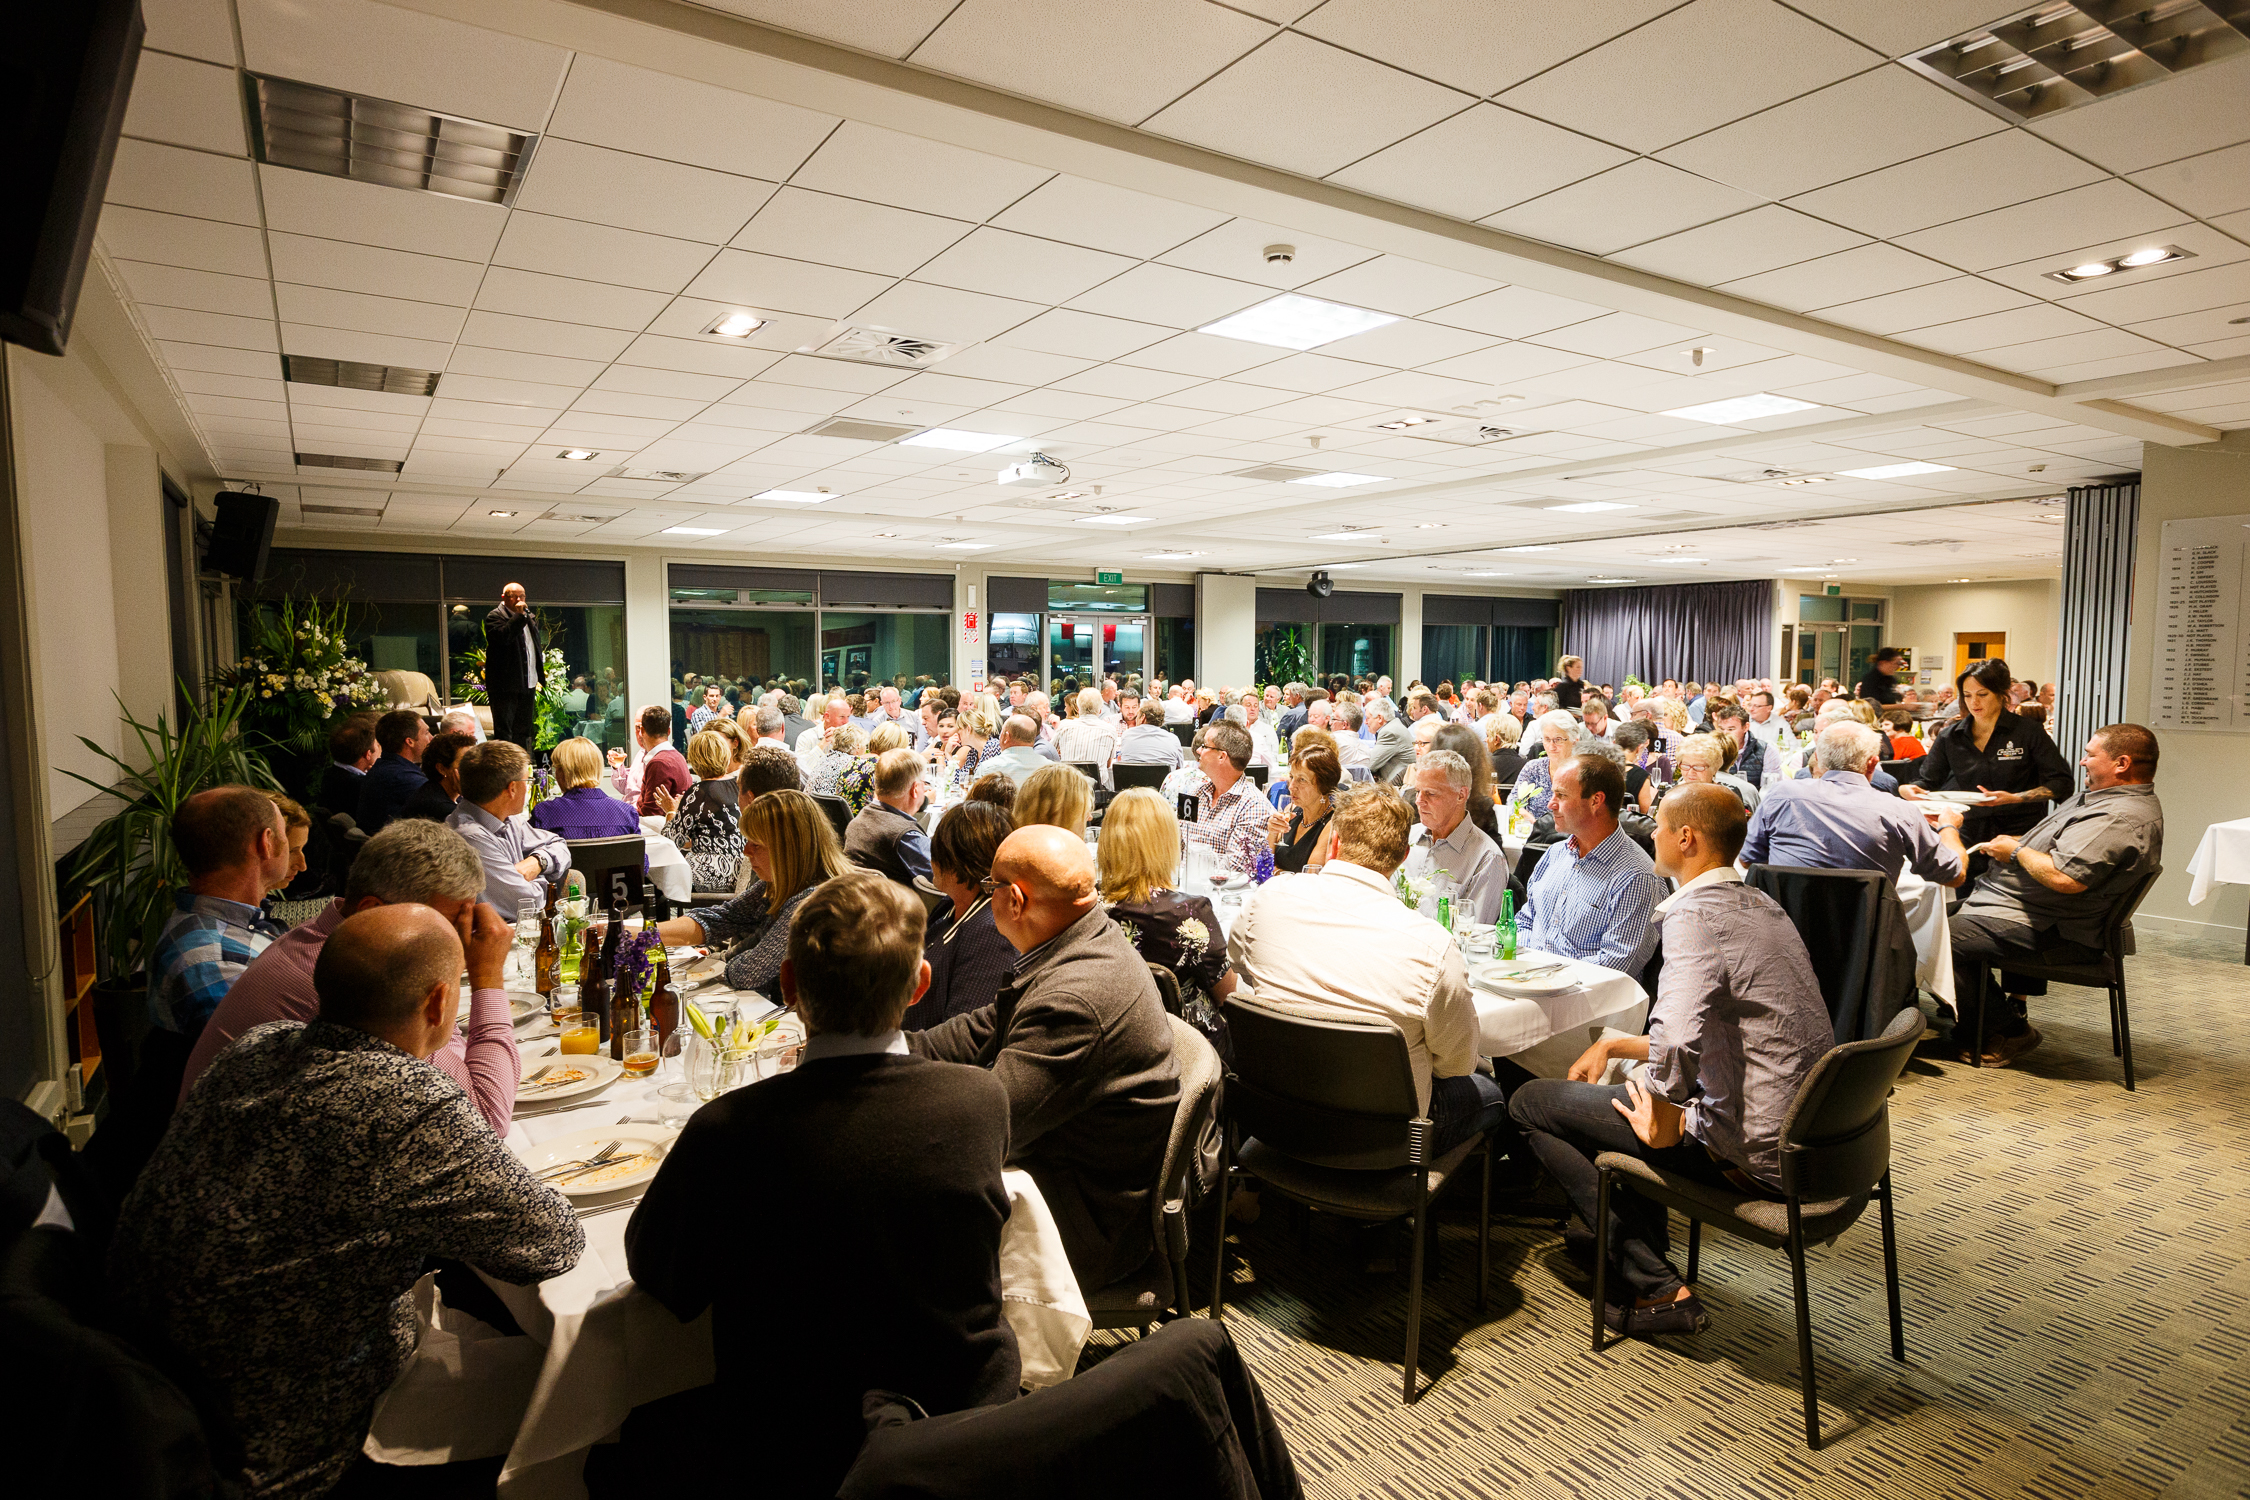 Conference 1 & 2 - 200 pax